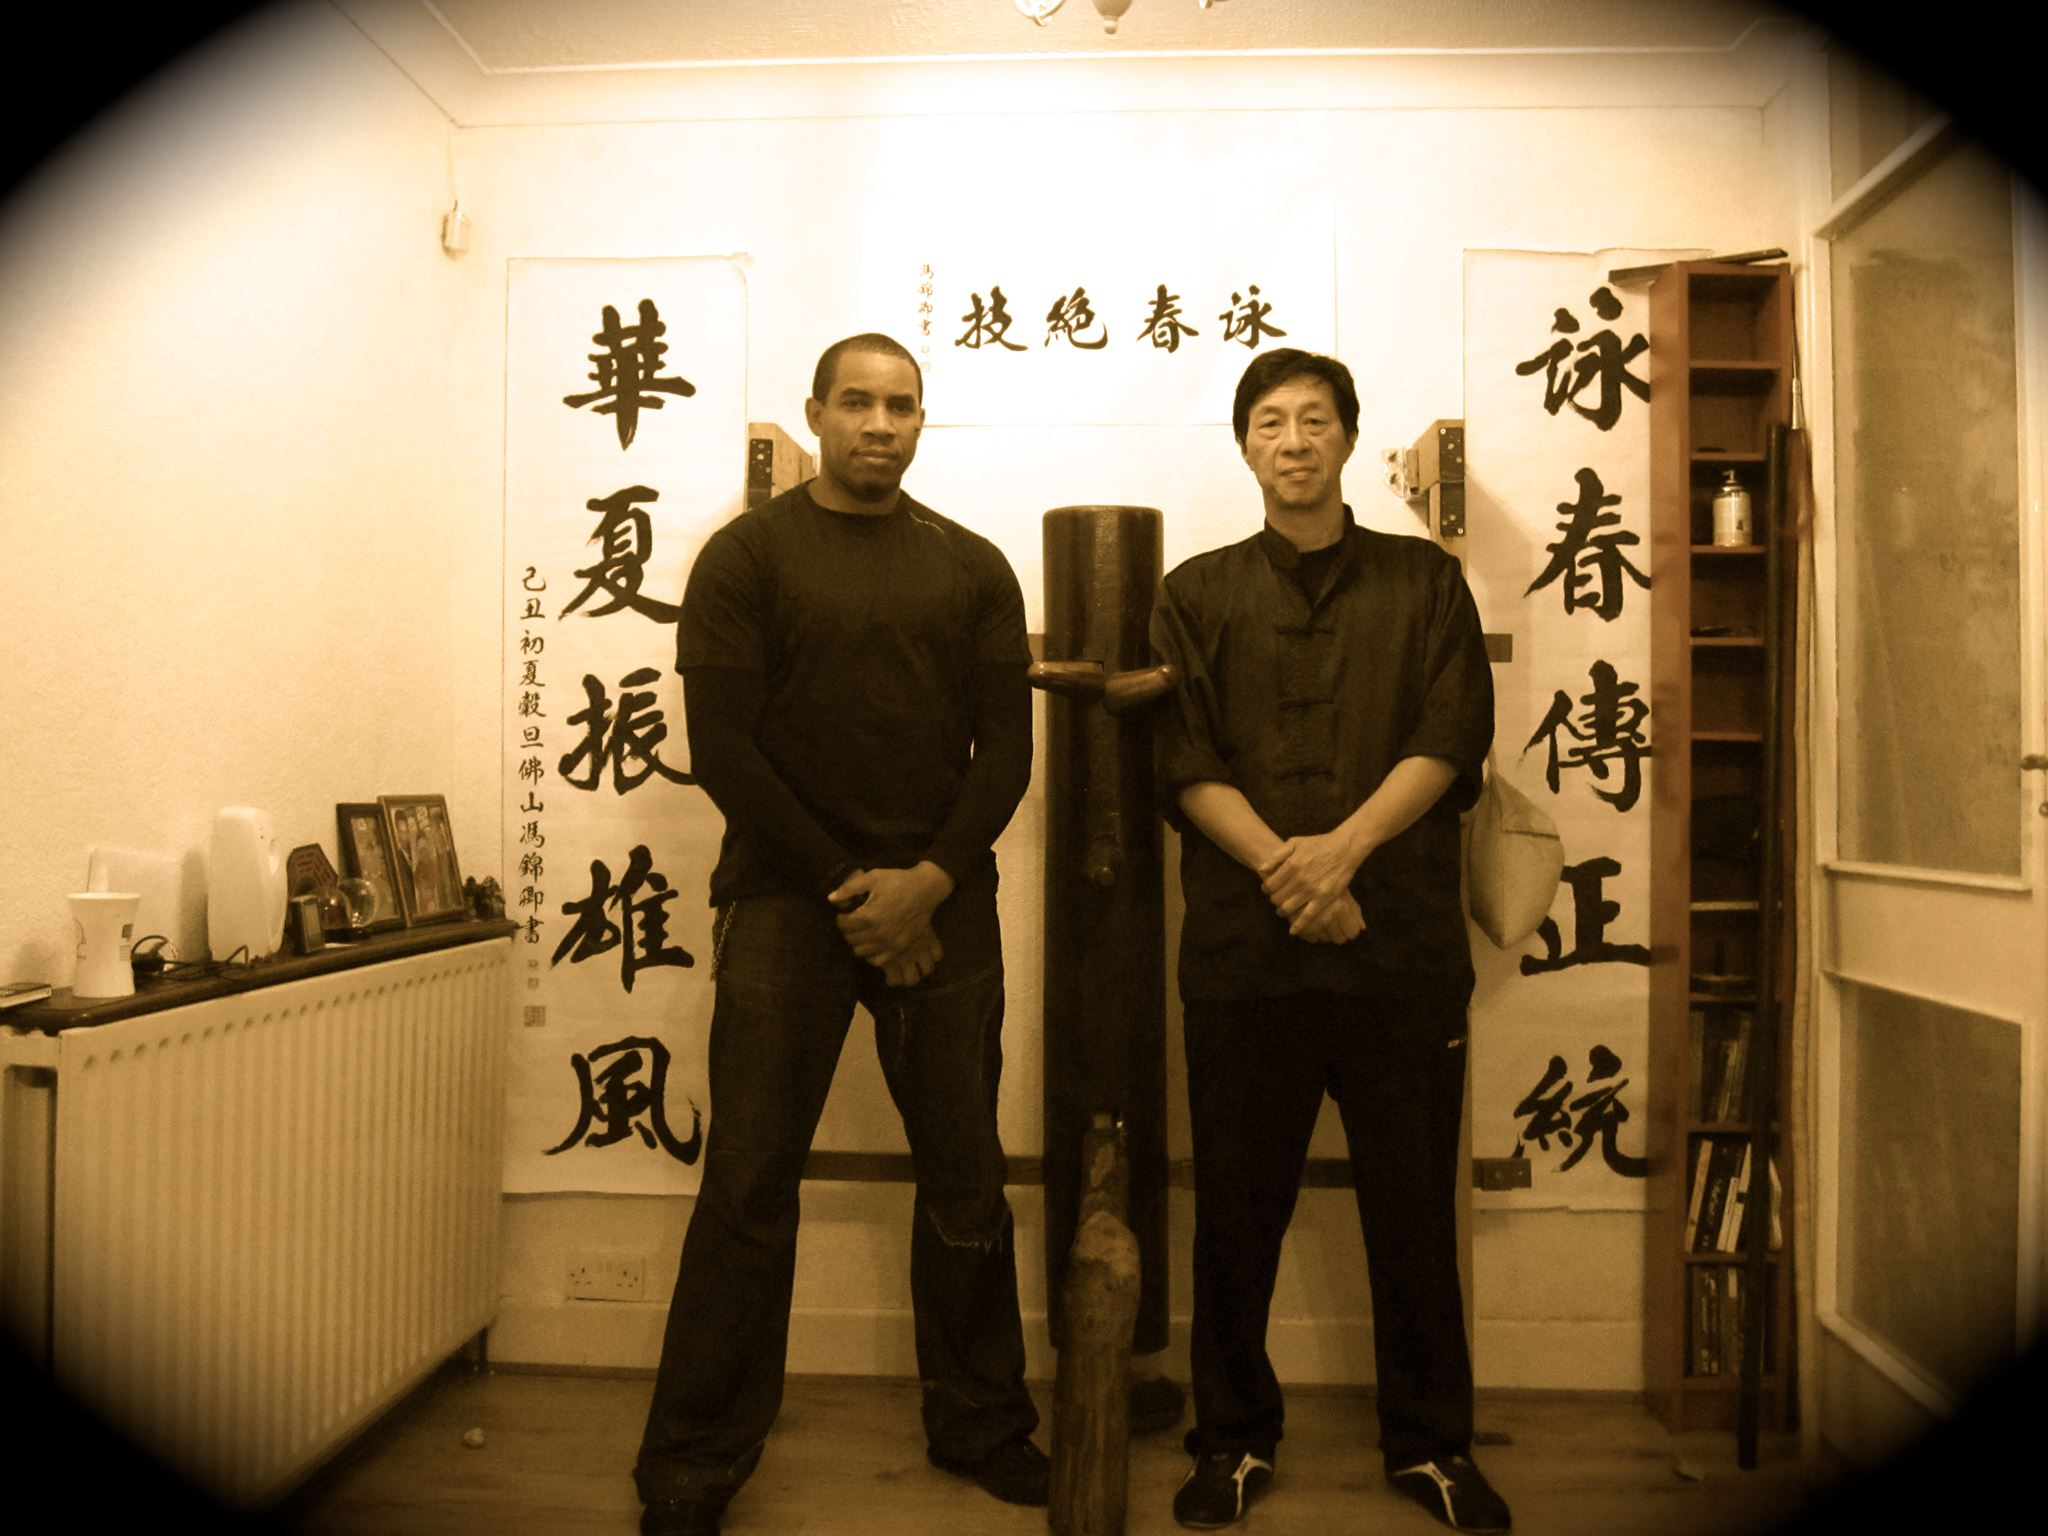 Jeff Alexander and Sifu kwok